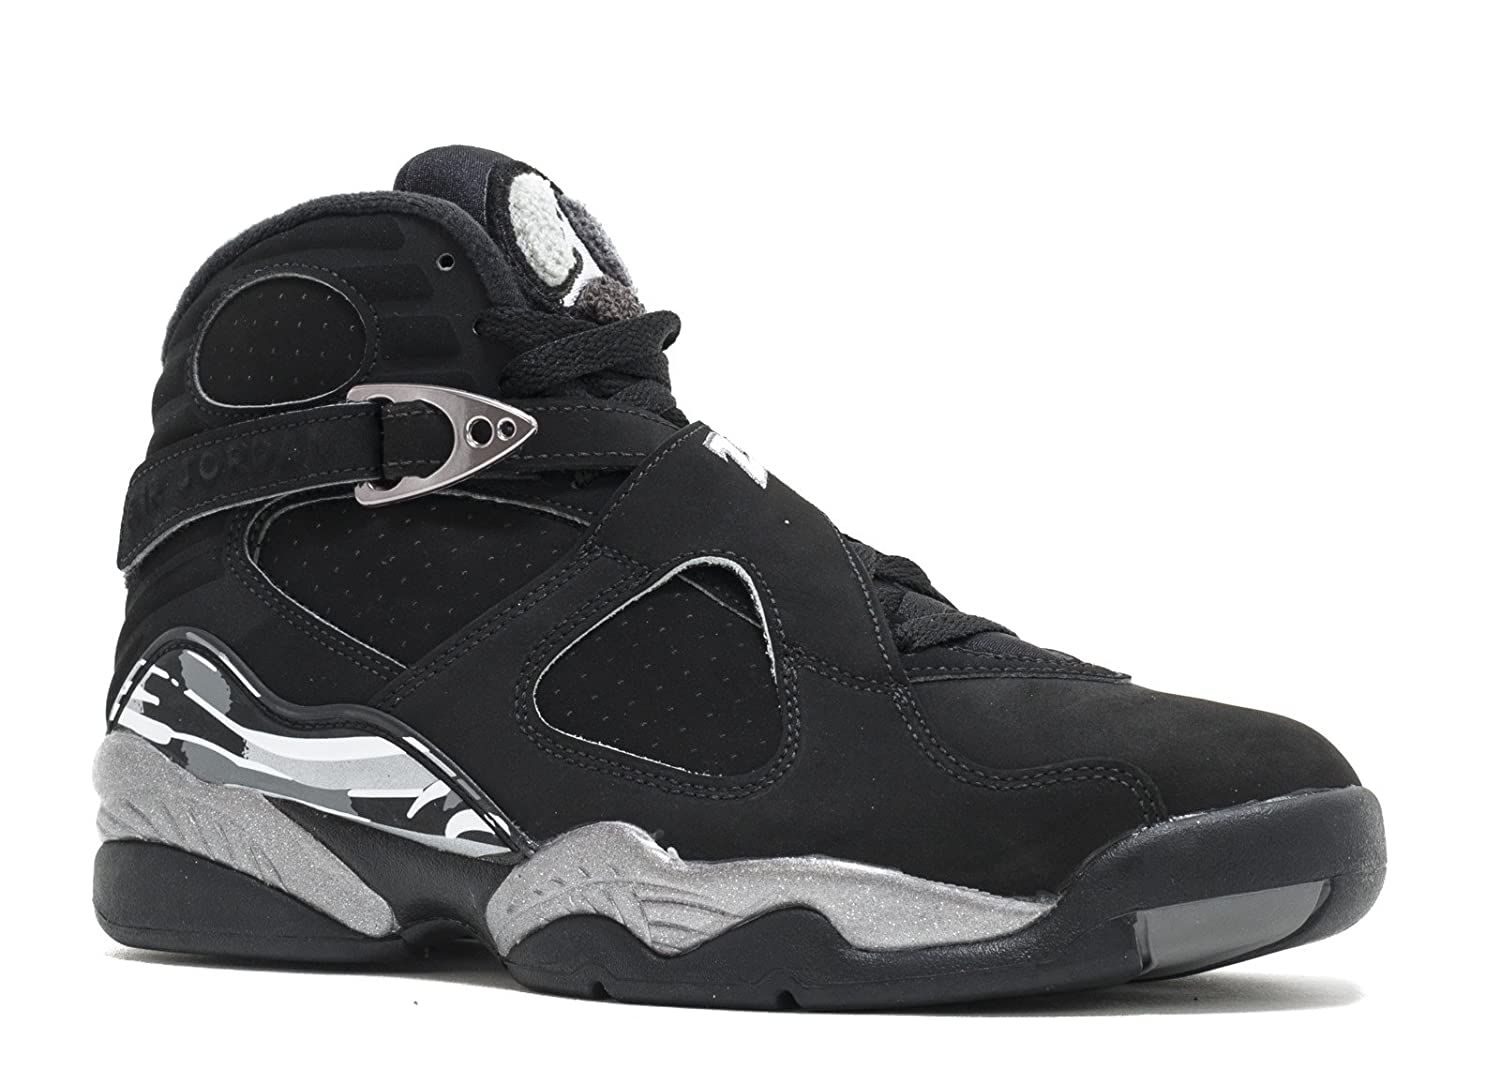 AIR JORDAN - エアジョーダン - AIR JORDAN 8 RETRO 'CHROME' - 305381-003 - SIZE 7 (メンズ) B019VULF0I